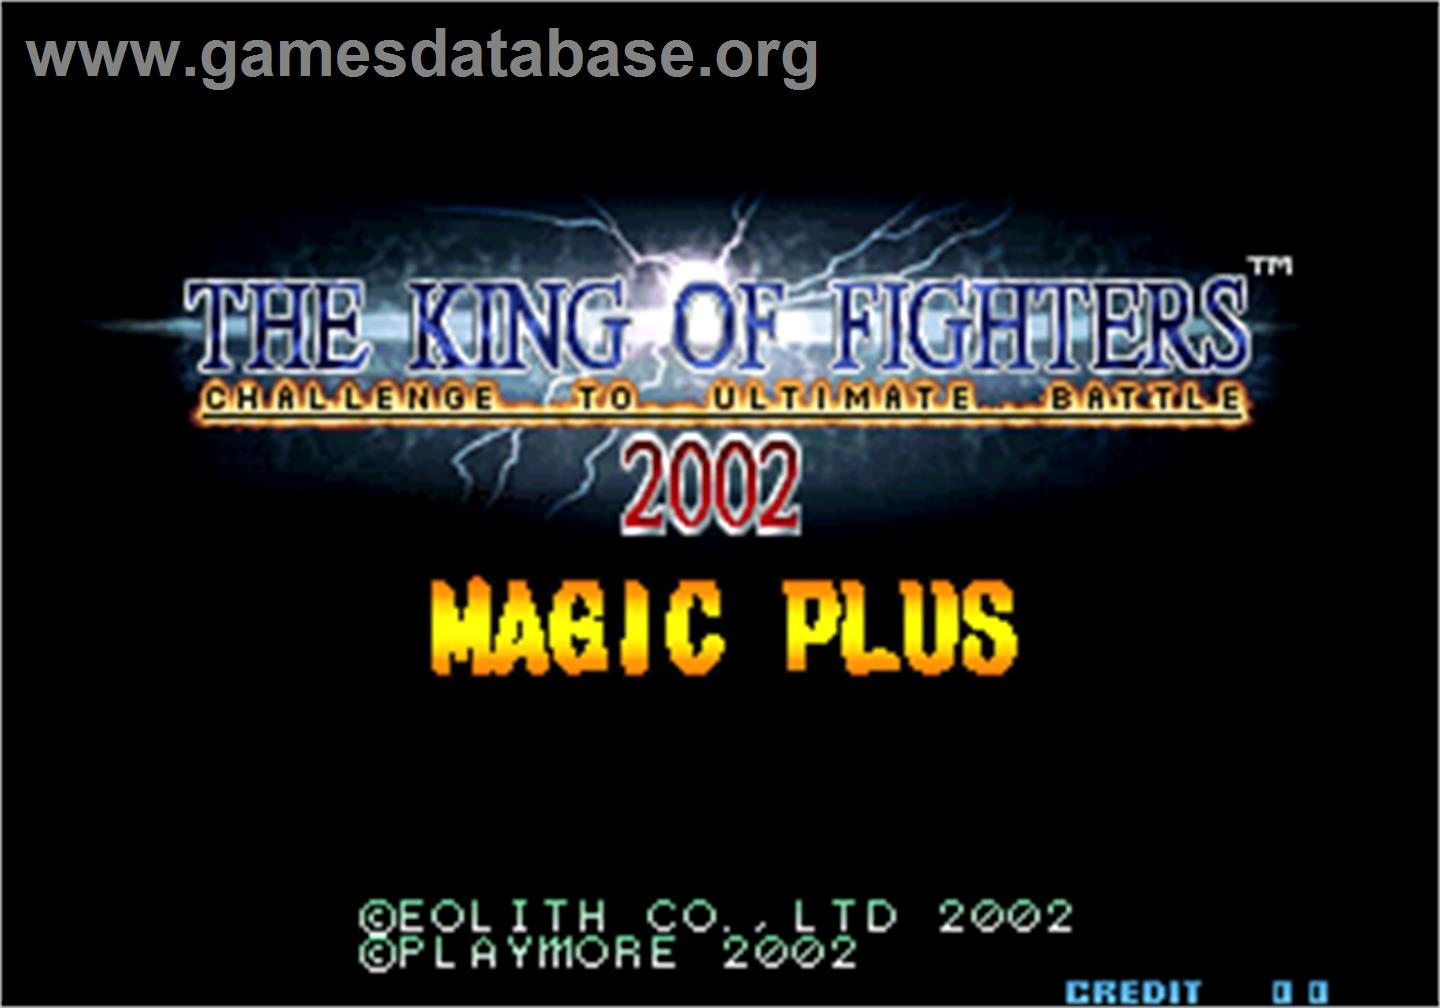 The King of Fighters 2002 Magic Plus - Arcade - Artwork - Title Screen